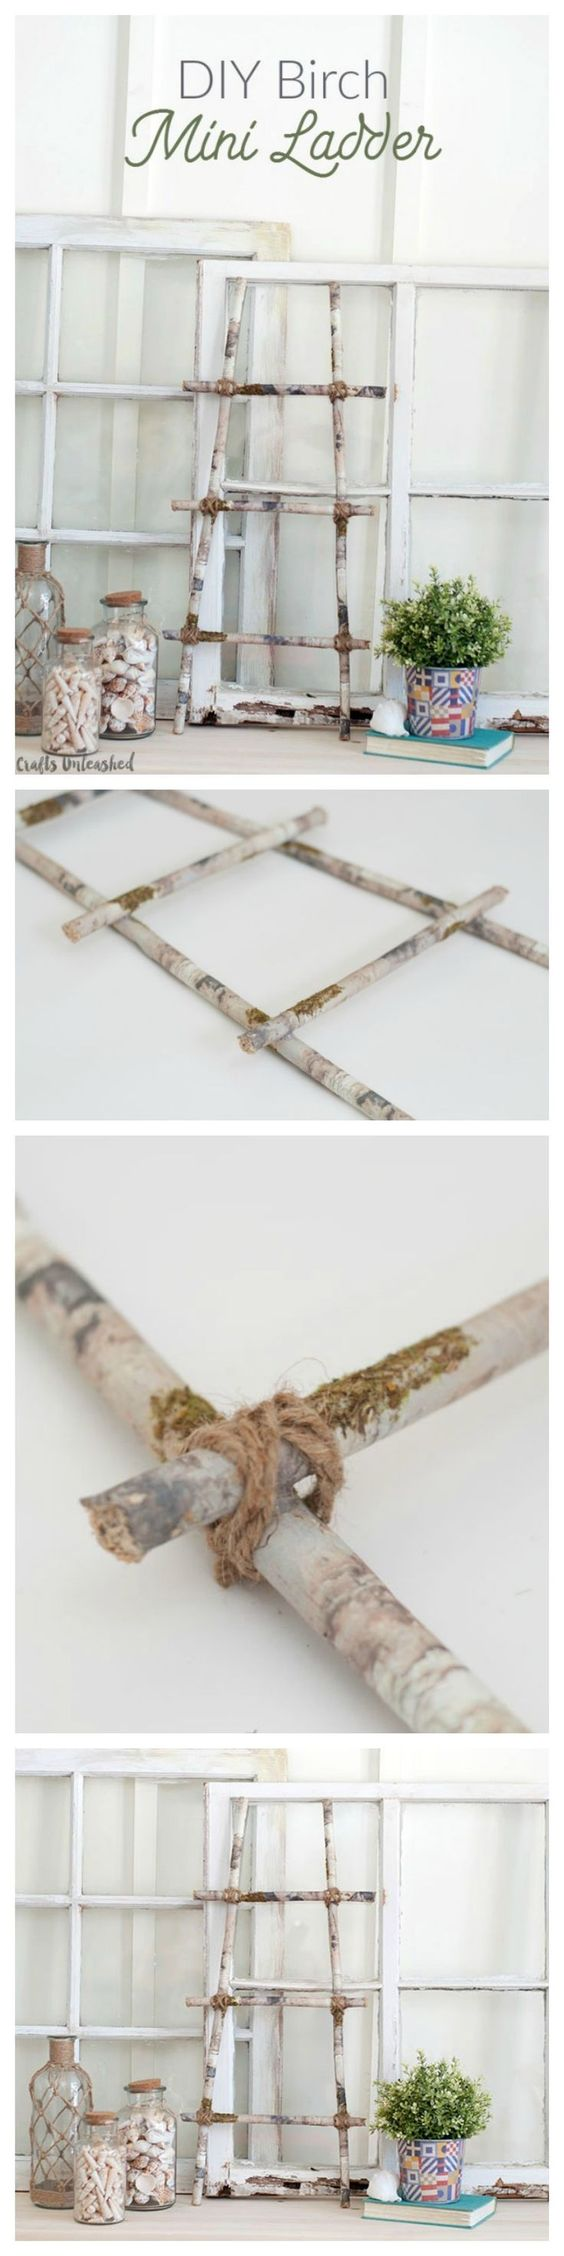 """I was really excited about making this """"faux"""" DIY birch mini ladder.  It really was one of the easiest projects I've worked on in a long time. Plus a perfect home decor project!"""